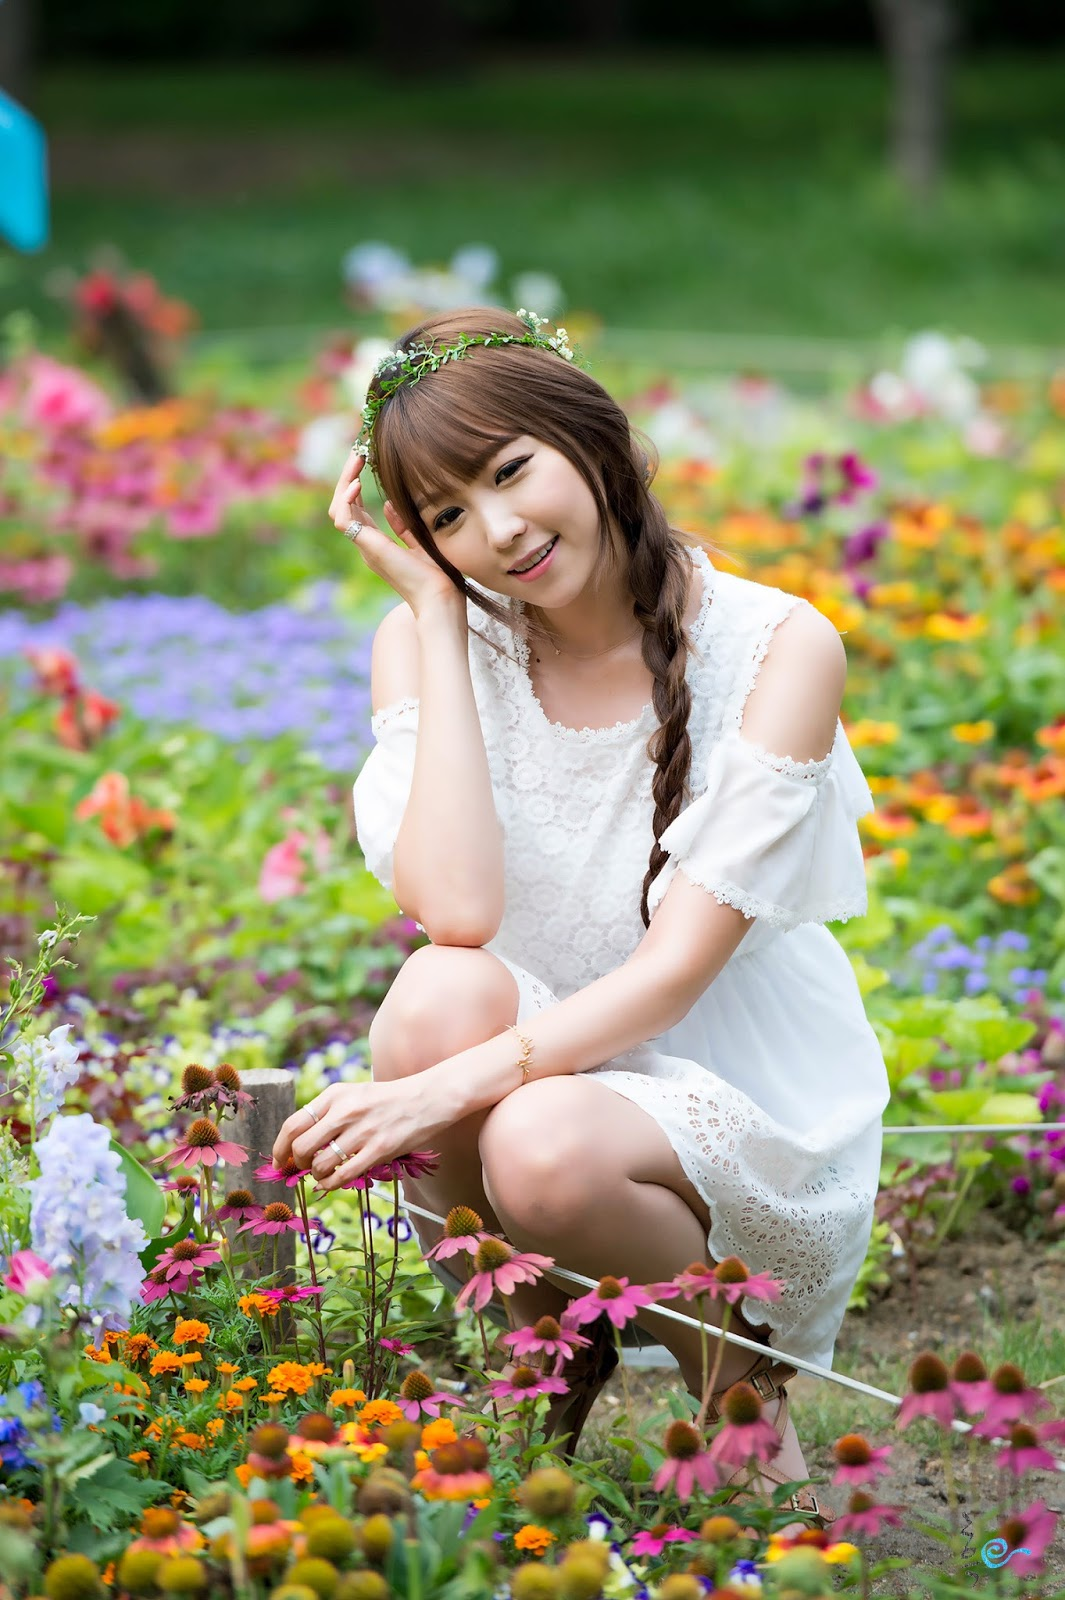 3 Lovely Lee Eun Hye In Outdoor Photo Shoot - very cute asian girl-girlcute4u.blogspot.com